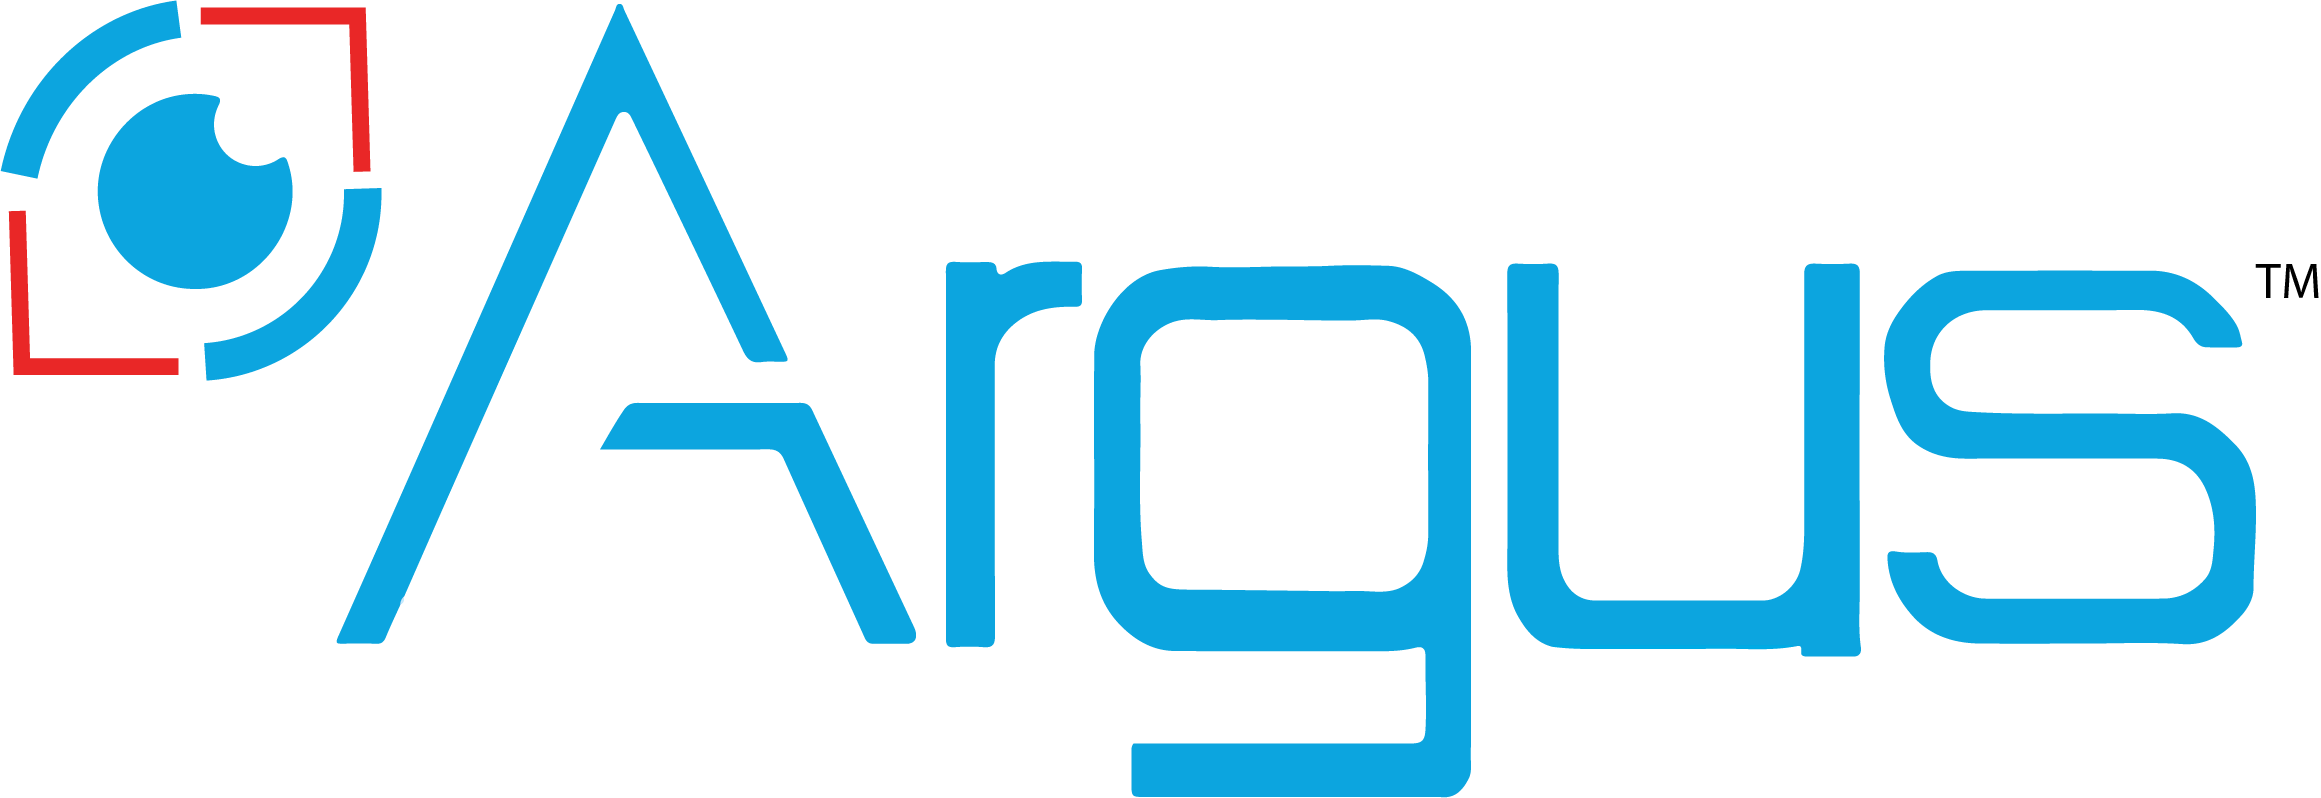 Argus® Offers 3-Month Free Trial on Polyp Detection and Sizing Artificial Intelligence Gastroenterology Technology